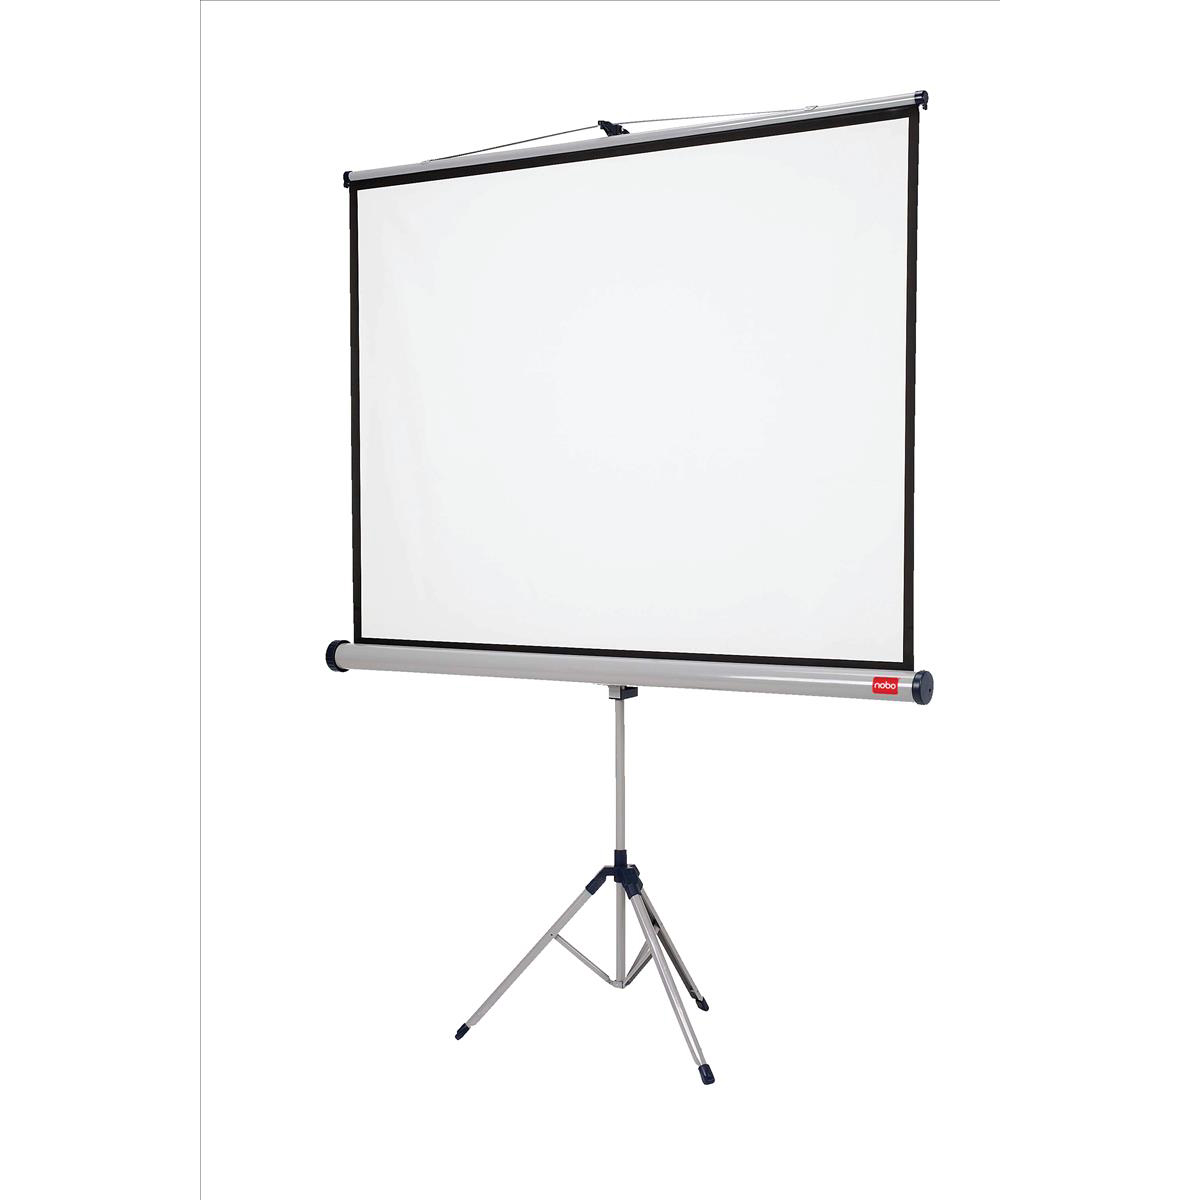 Image for Nobo Tripod Widescreen Projection Screen W1500xH1000 Ref 1902395W